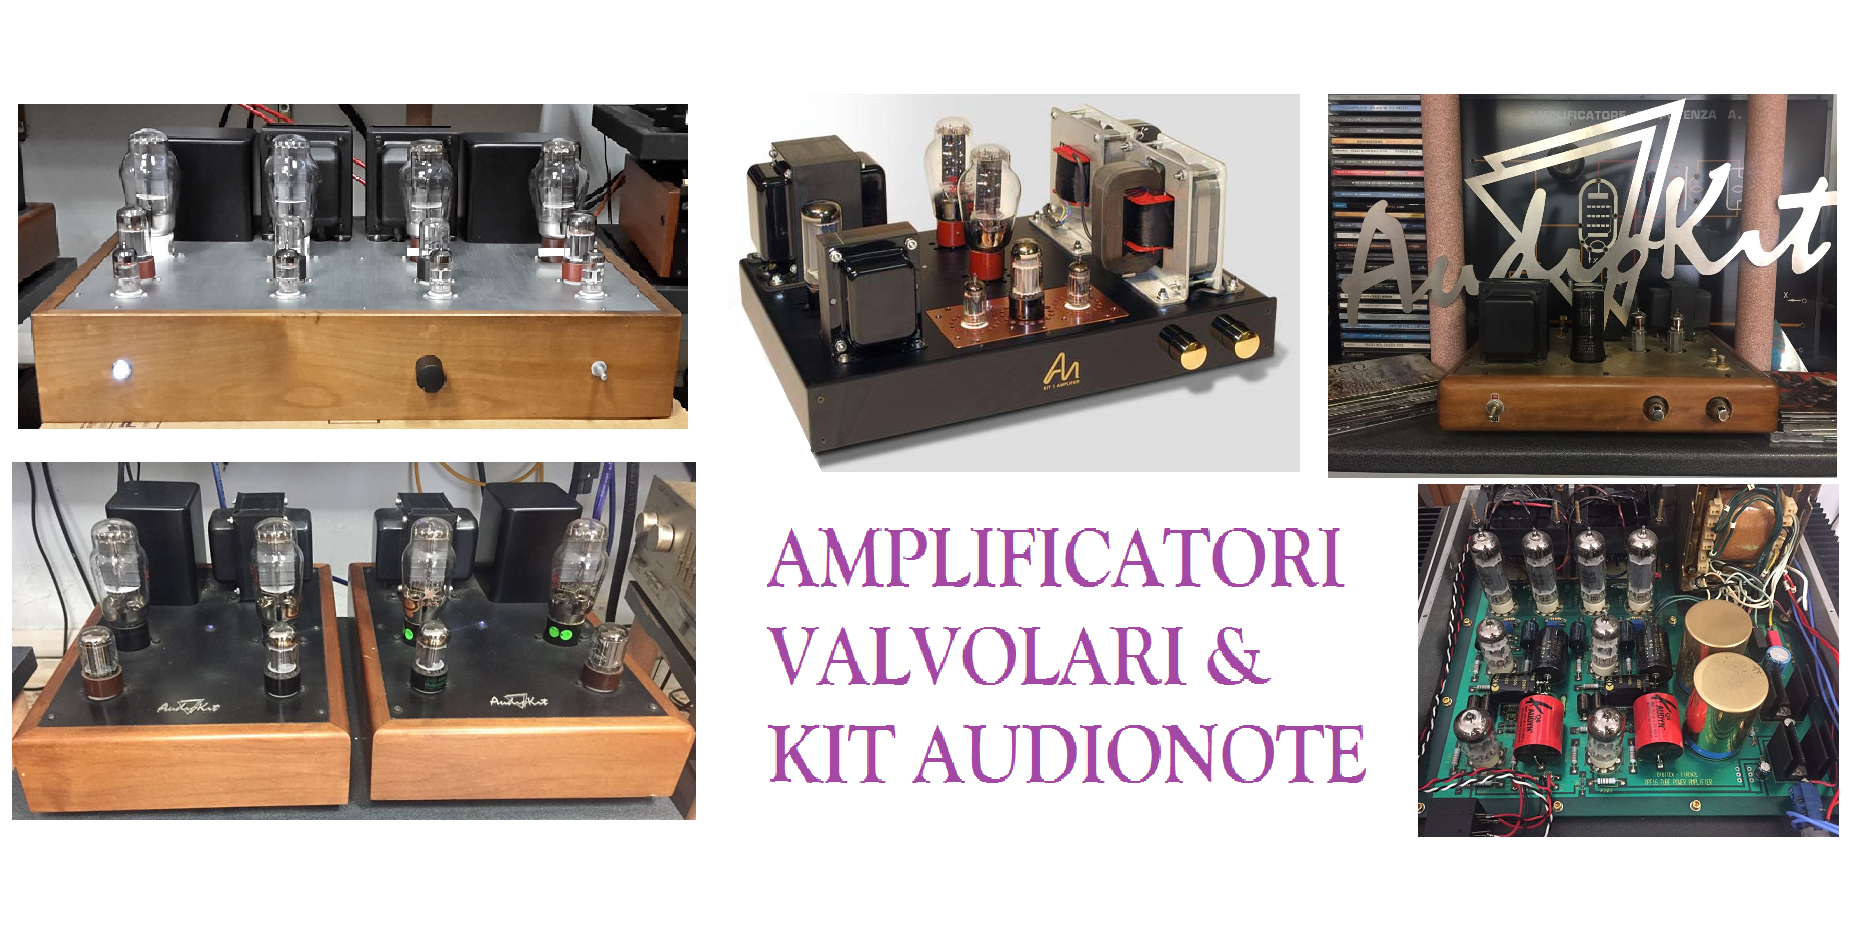 audio note kits